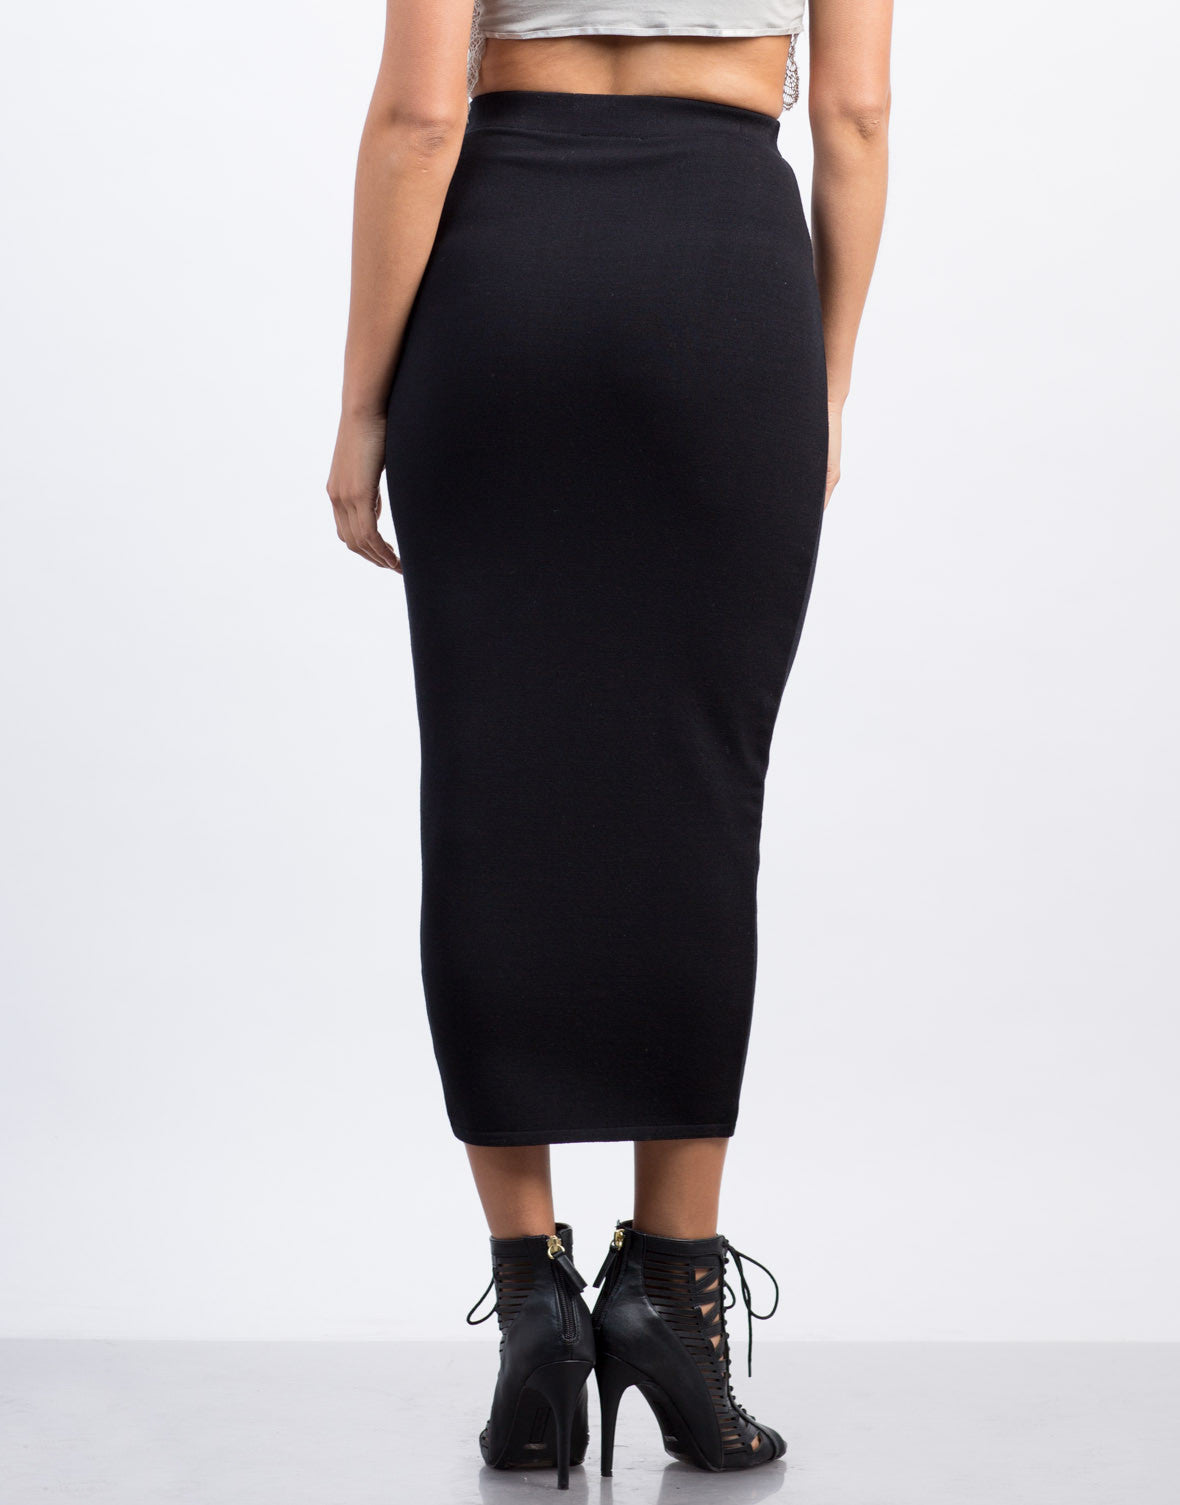 Back View of Solid Long Pencil Skirt